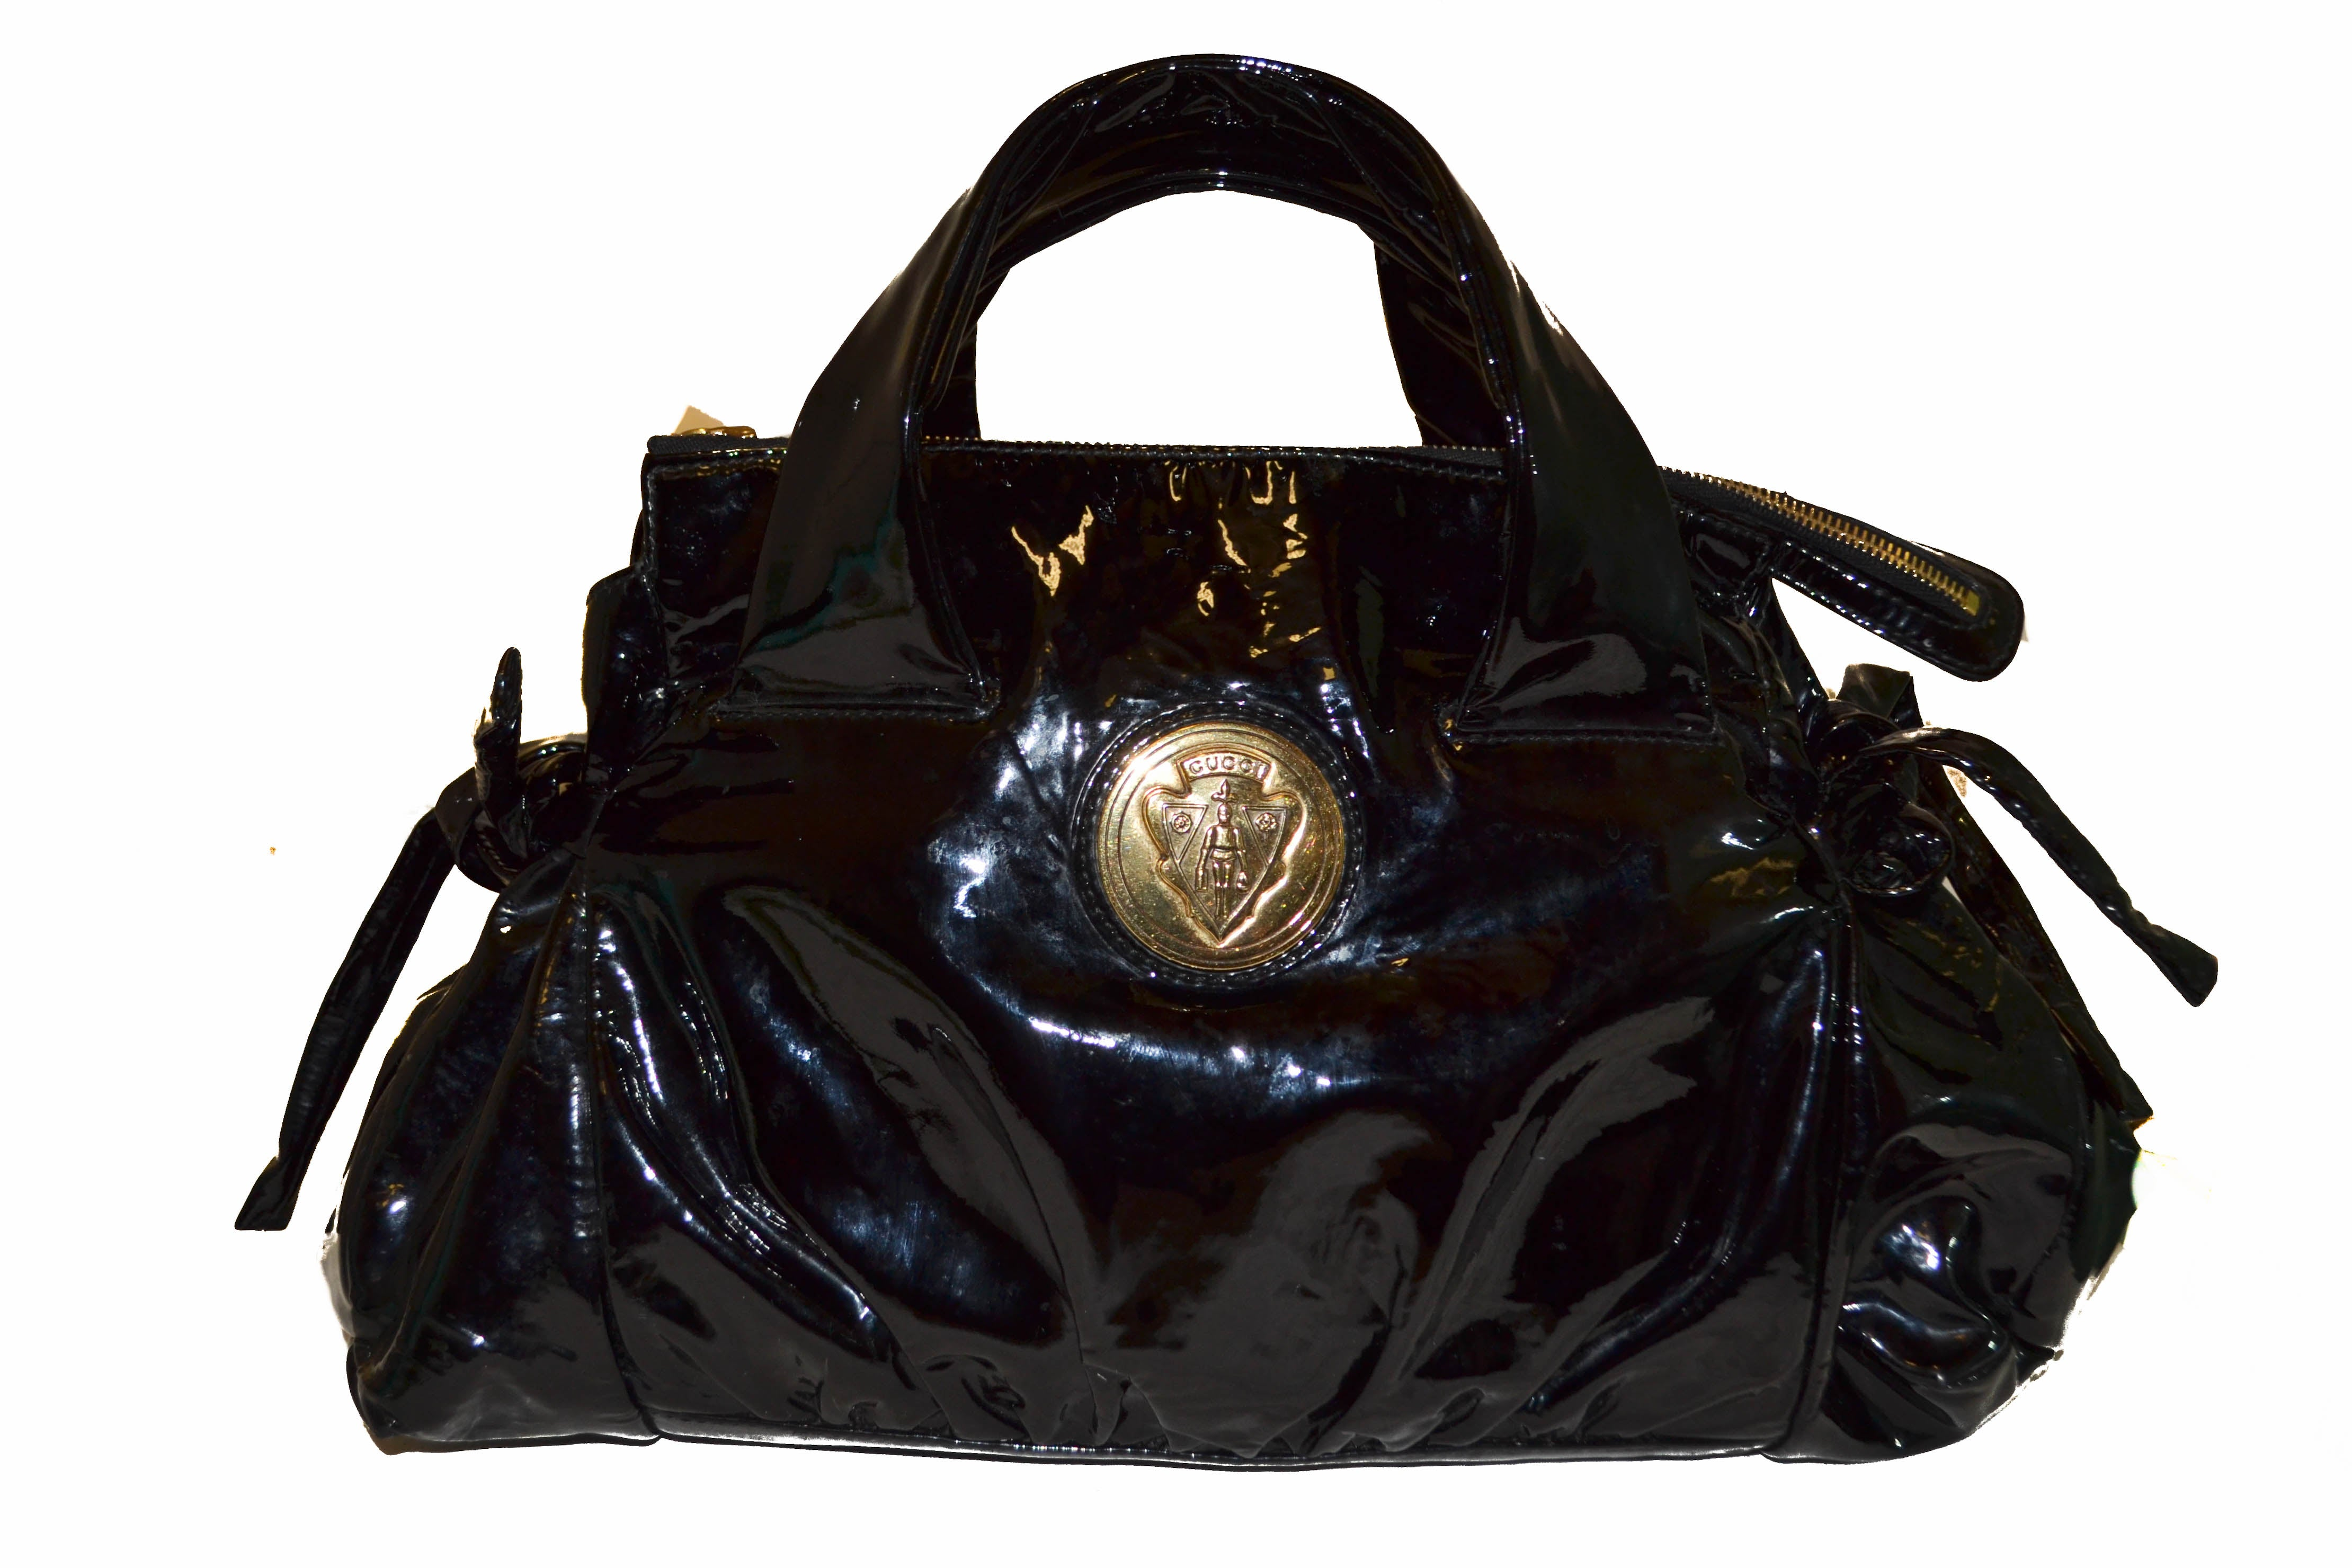 Authentic Gucci Hysteria Collection Black Patent Leather Handbag ... ce523b2bb1478